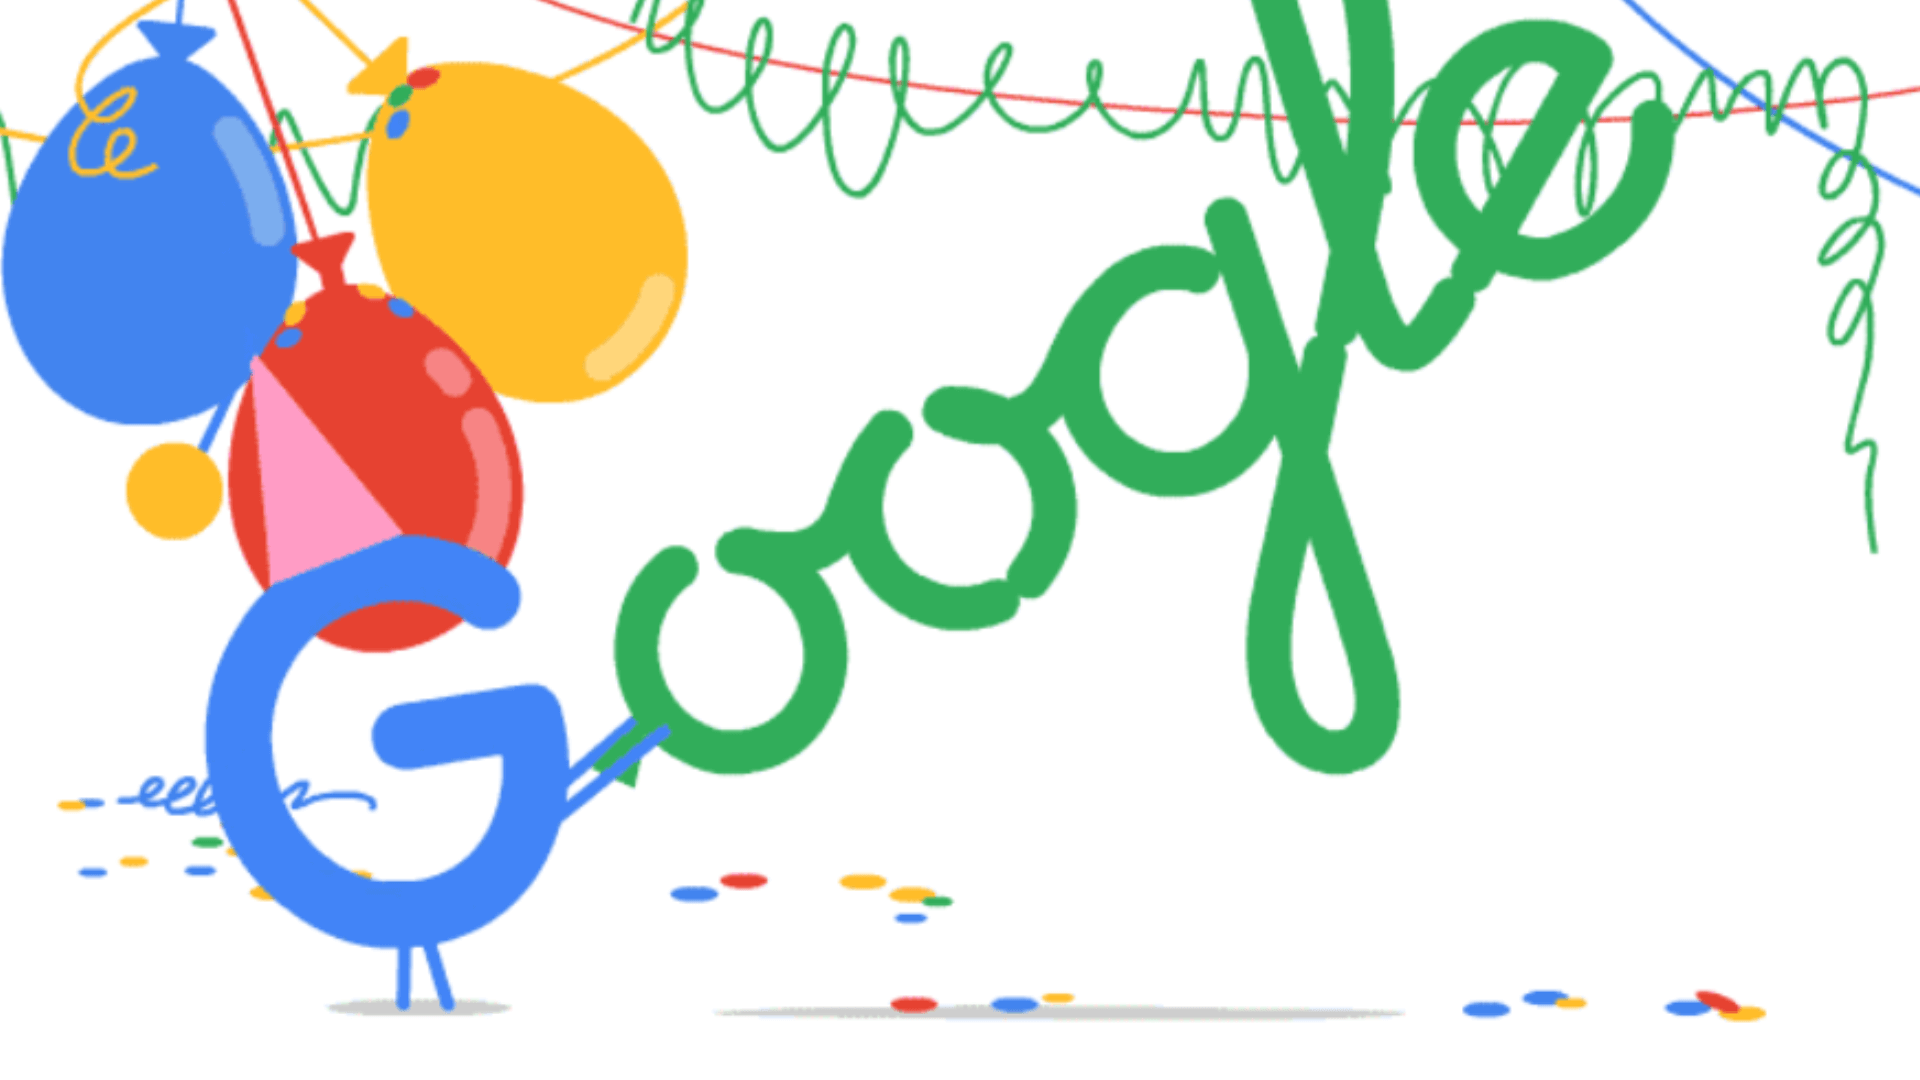 Commemorating 20 years of Google